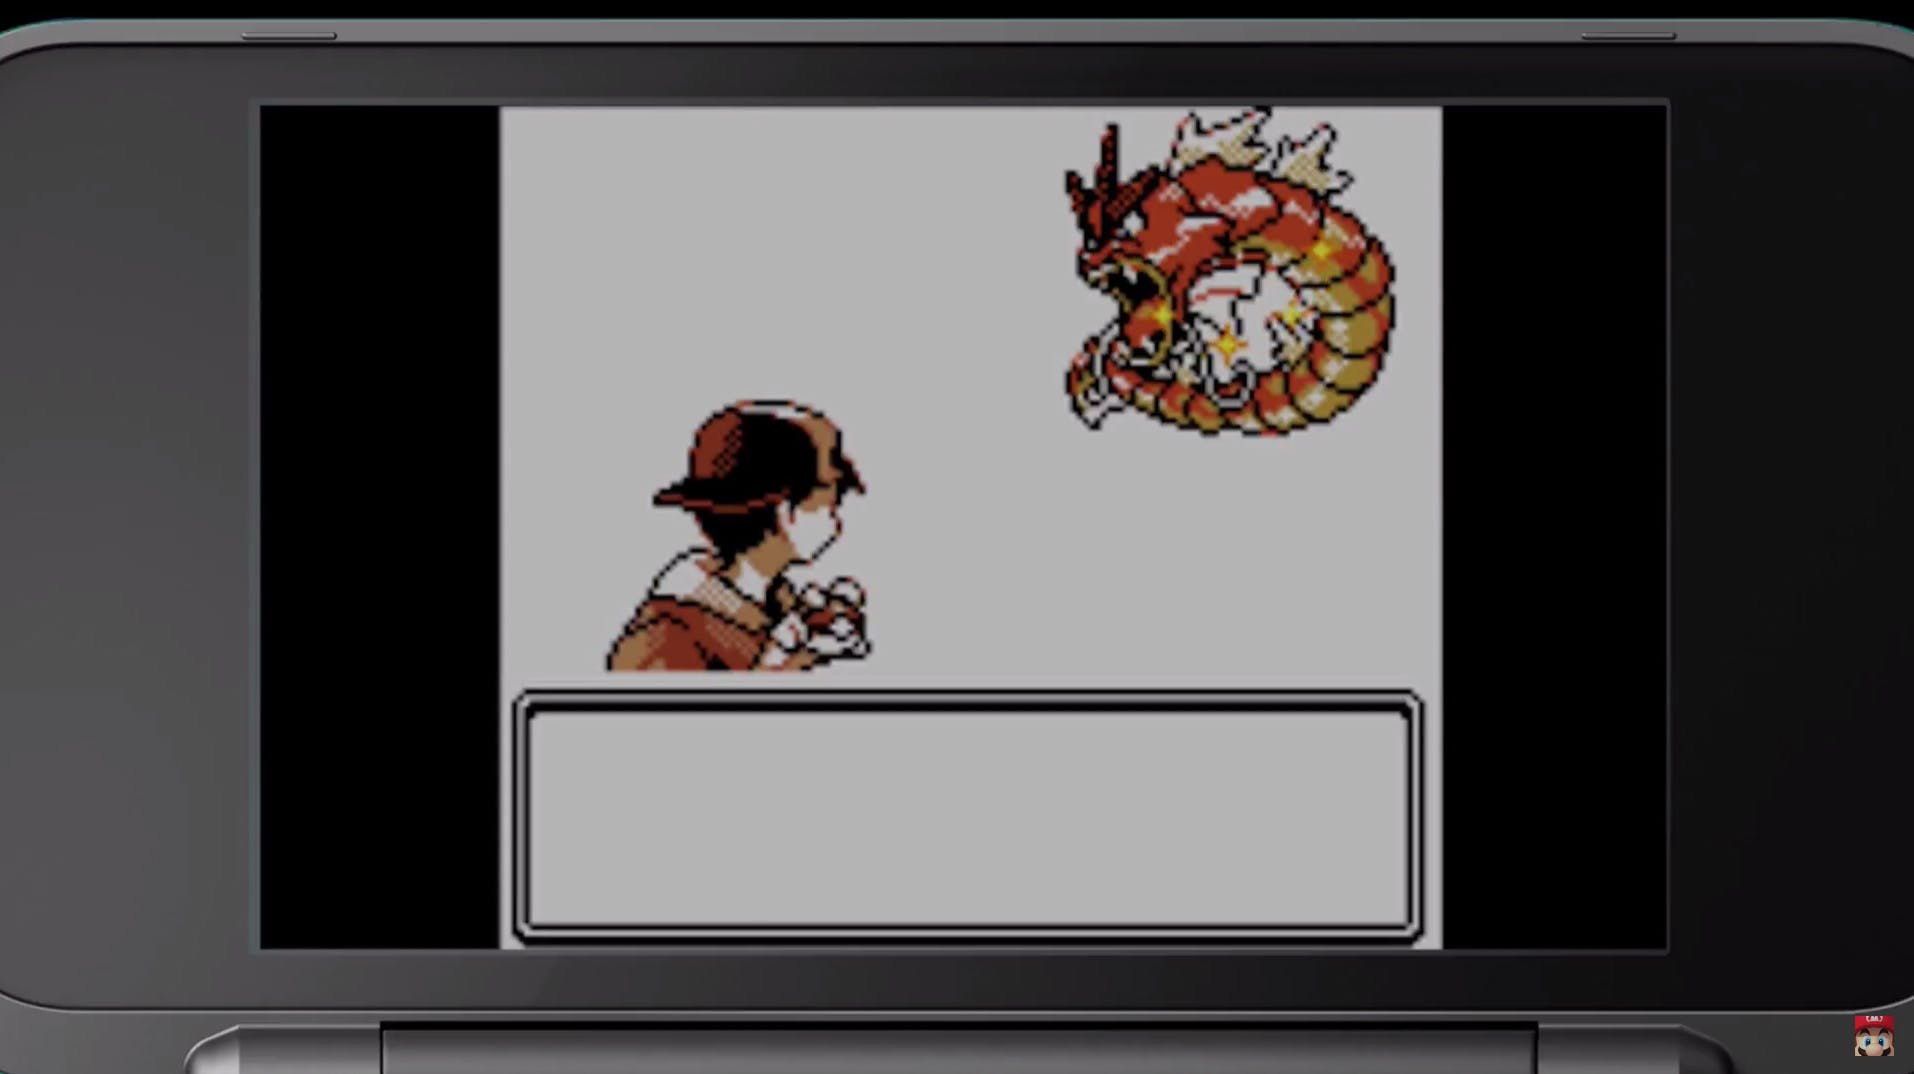 Pixel-perfect, this pokemon trainer is catching a rare Gyarados